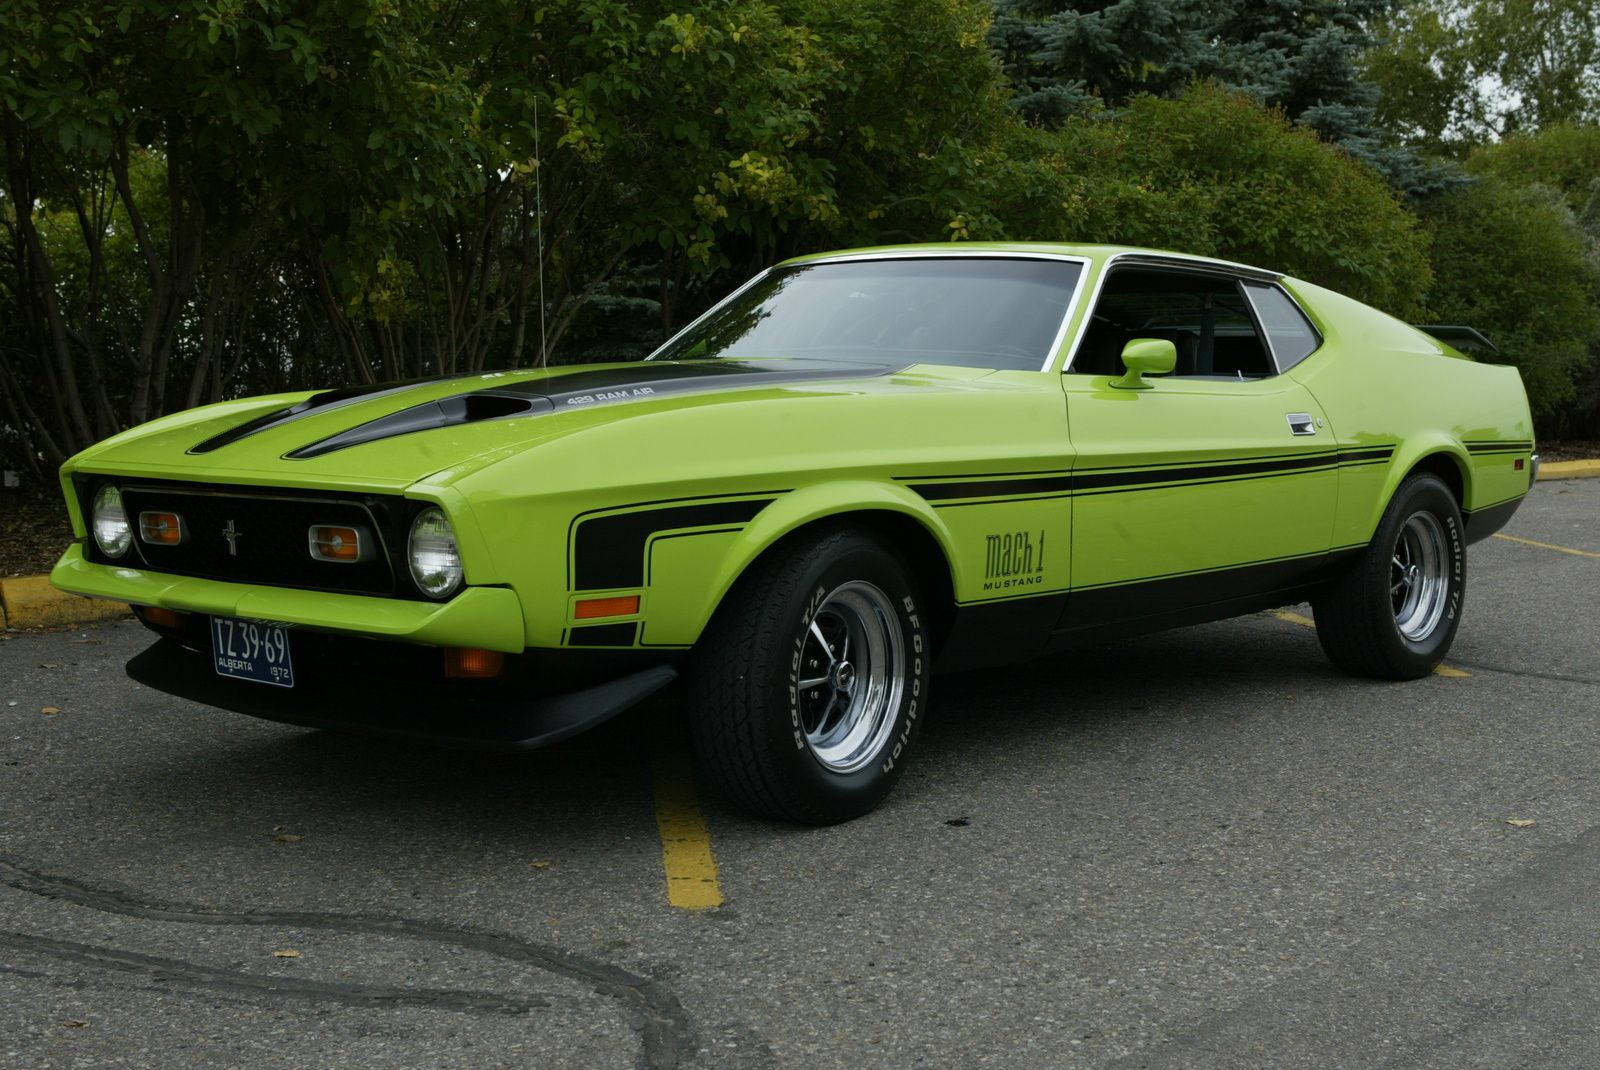 1972 mustang mach 1 1972 ford mustang mach 1 pictures 1972 ford mustang